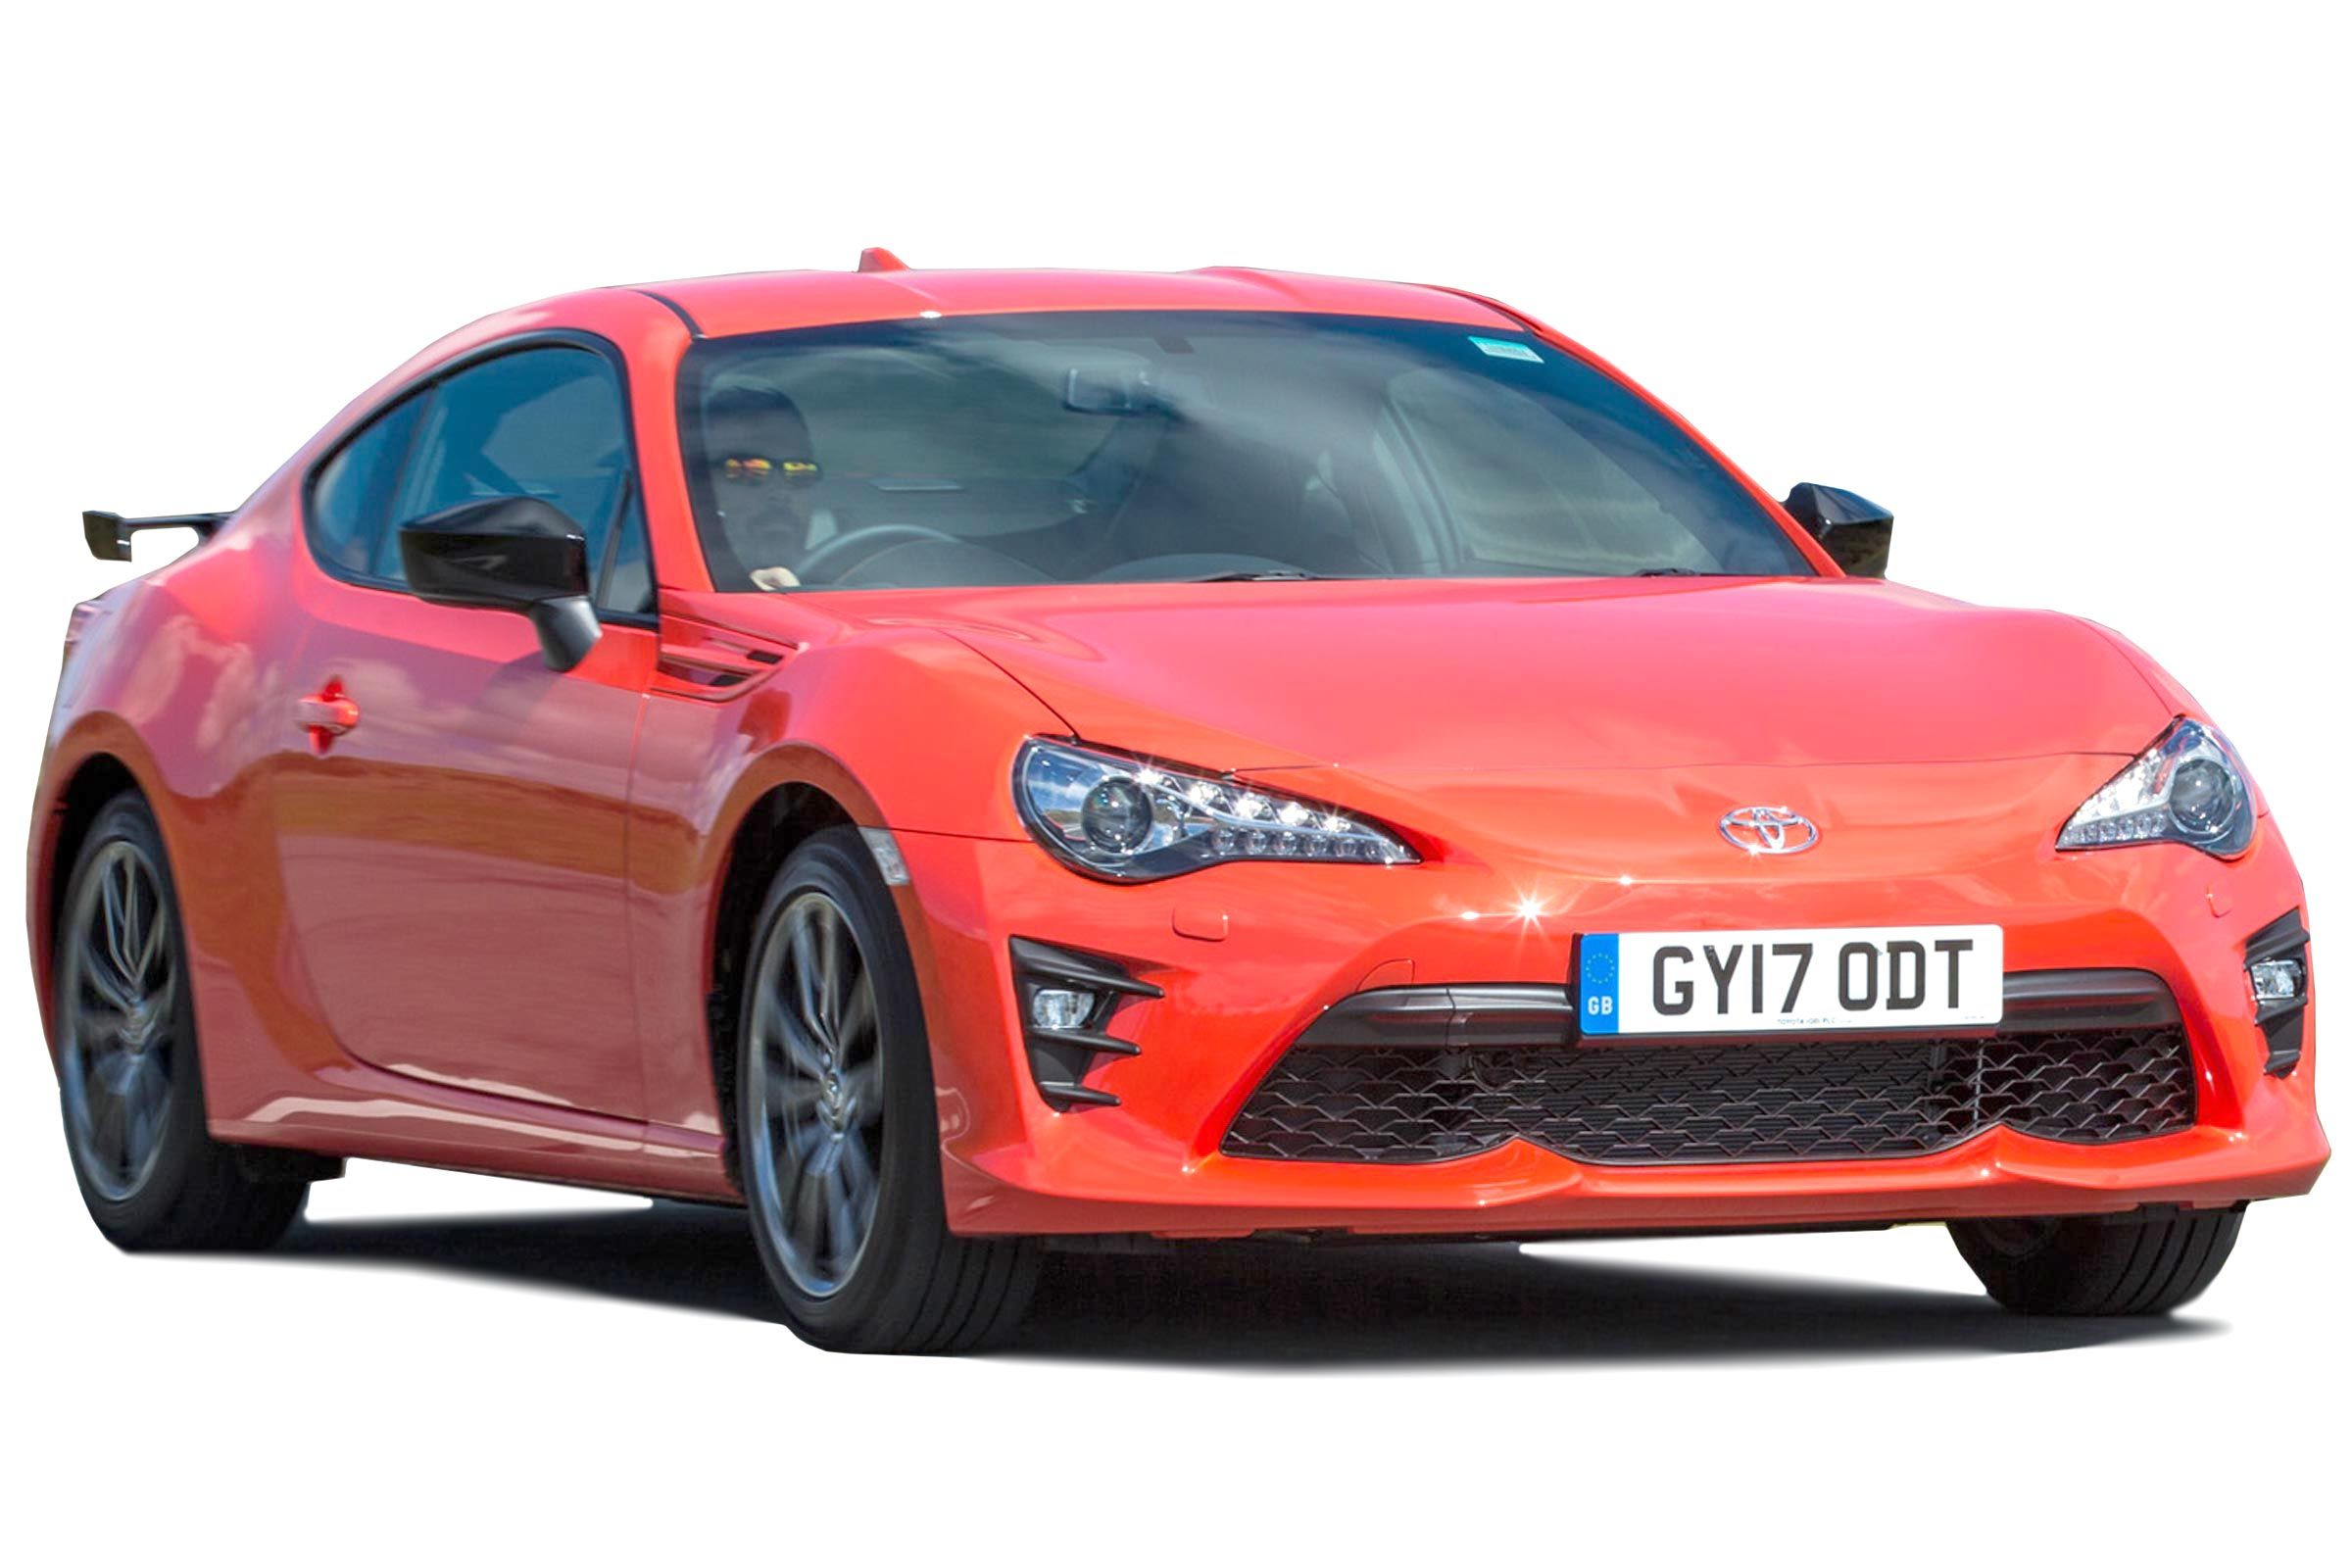 Toyota GT 86 coupe prices amp specifications Carbuyer